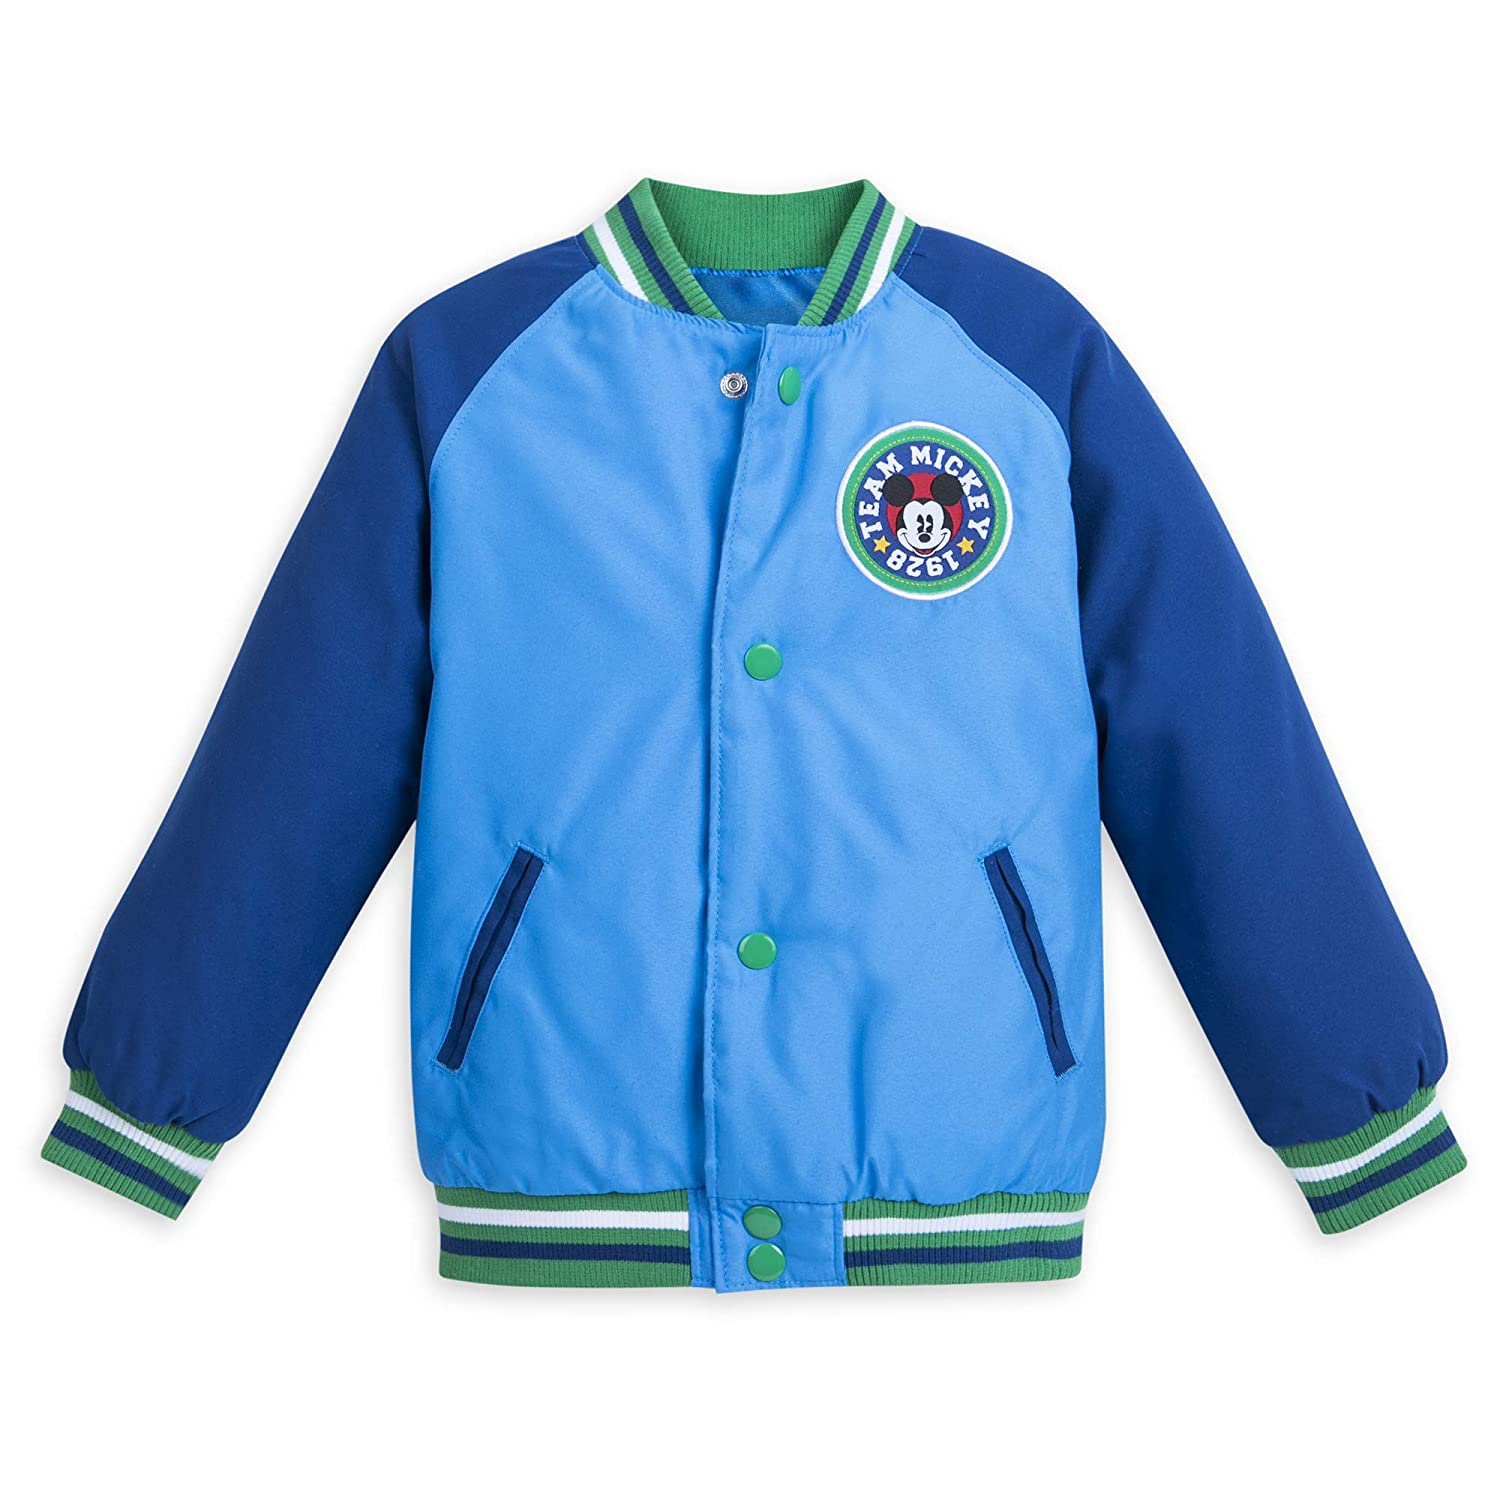 Disney Mickey Mouse Varsity Jacket for Boys Blue